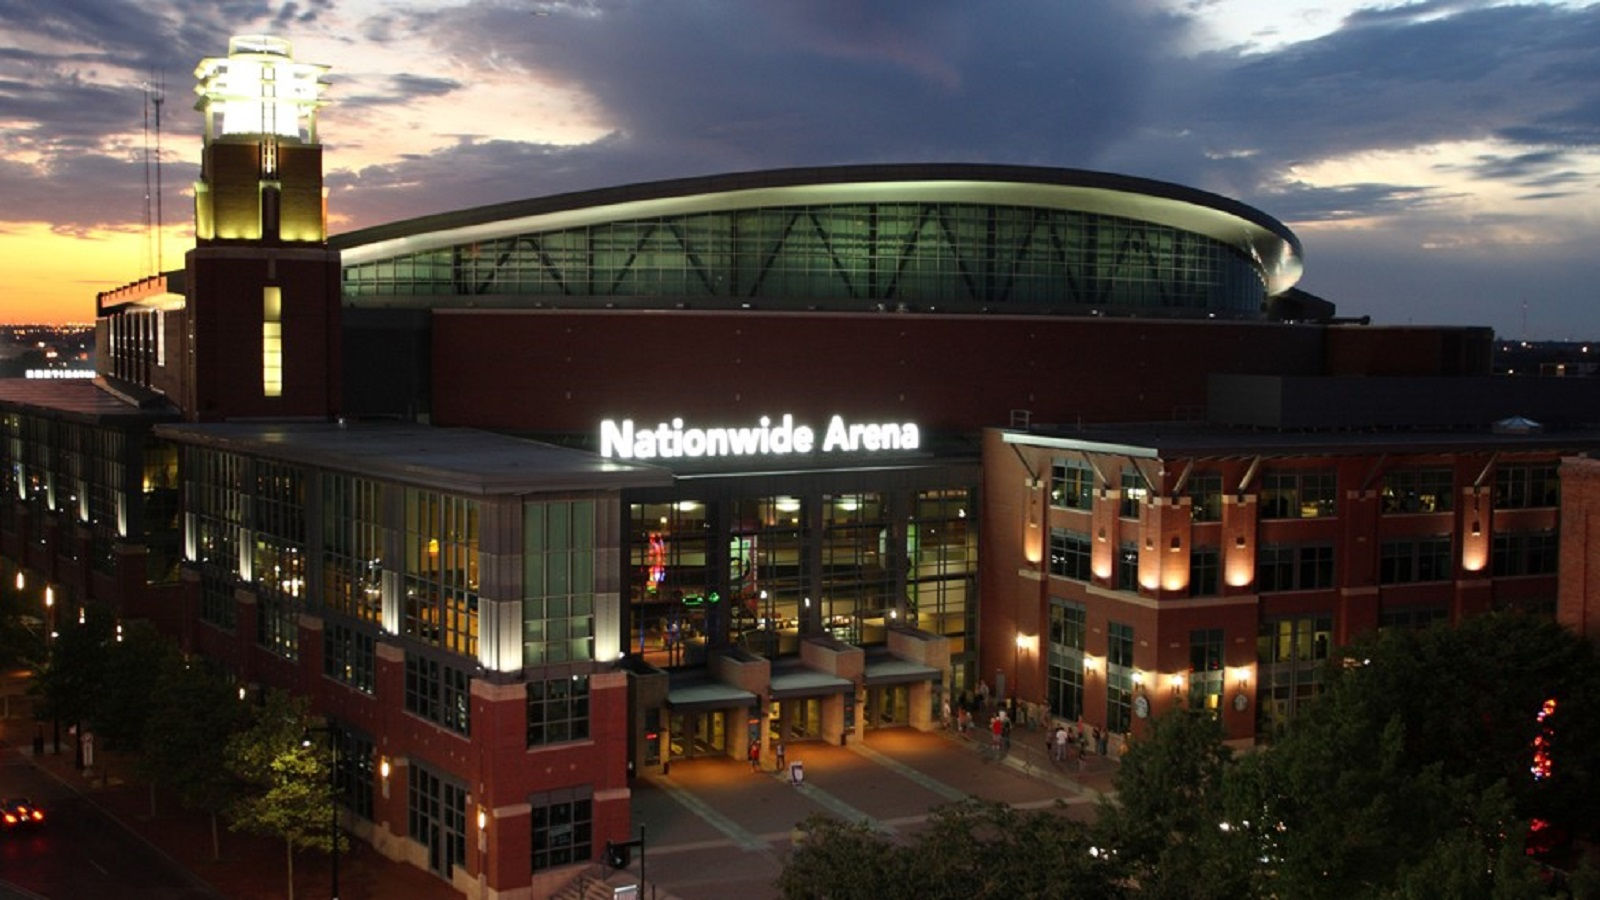 Things to do in Columbus Ohio - Nationwide Arena